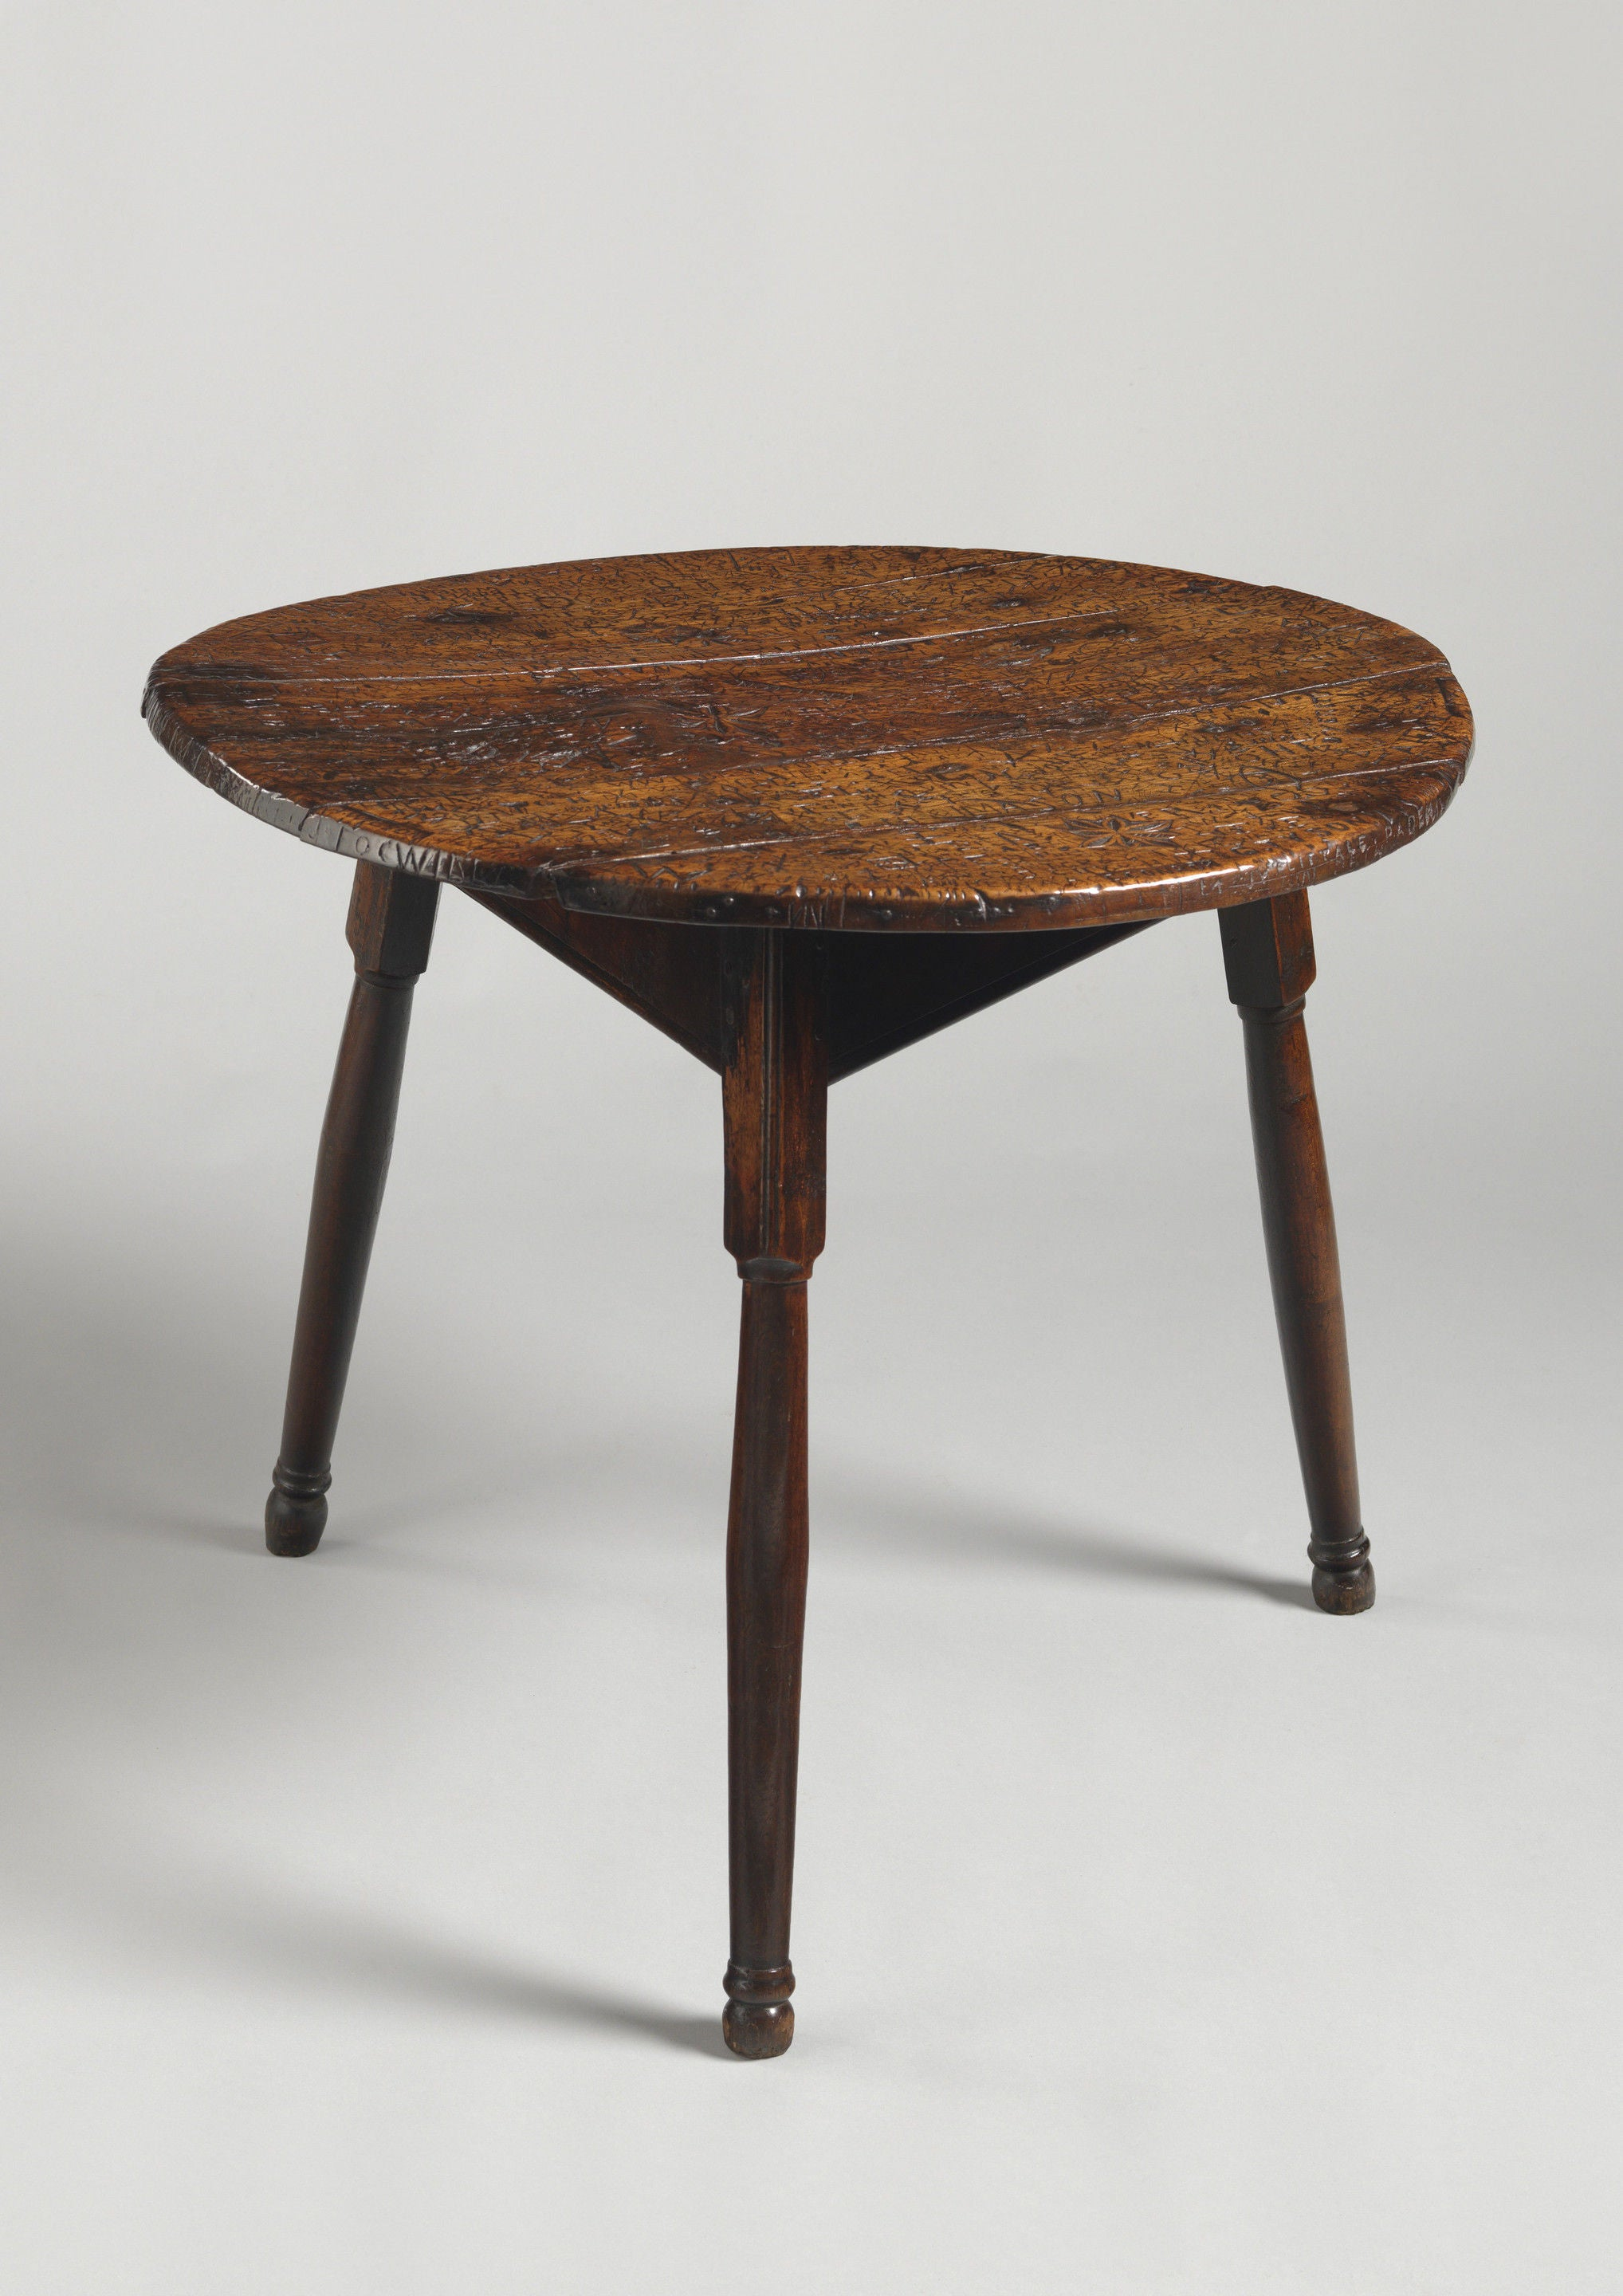 Remarkable Folk Art Tavern Table